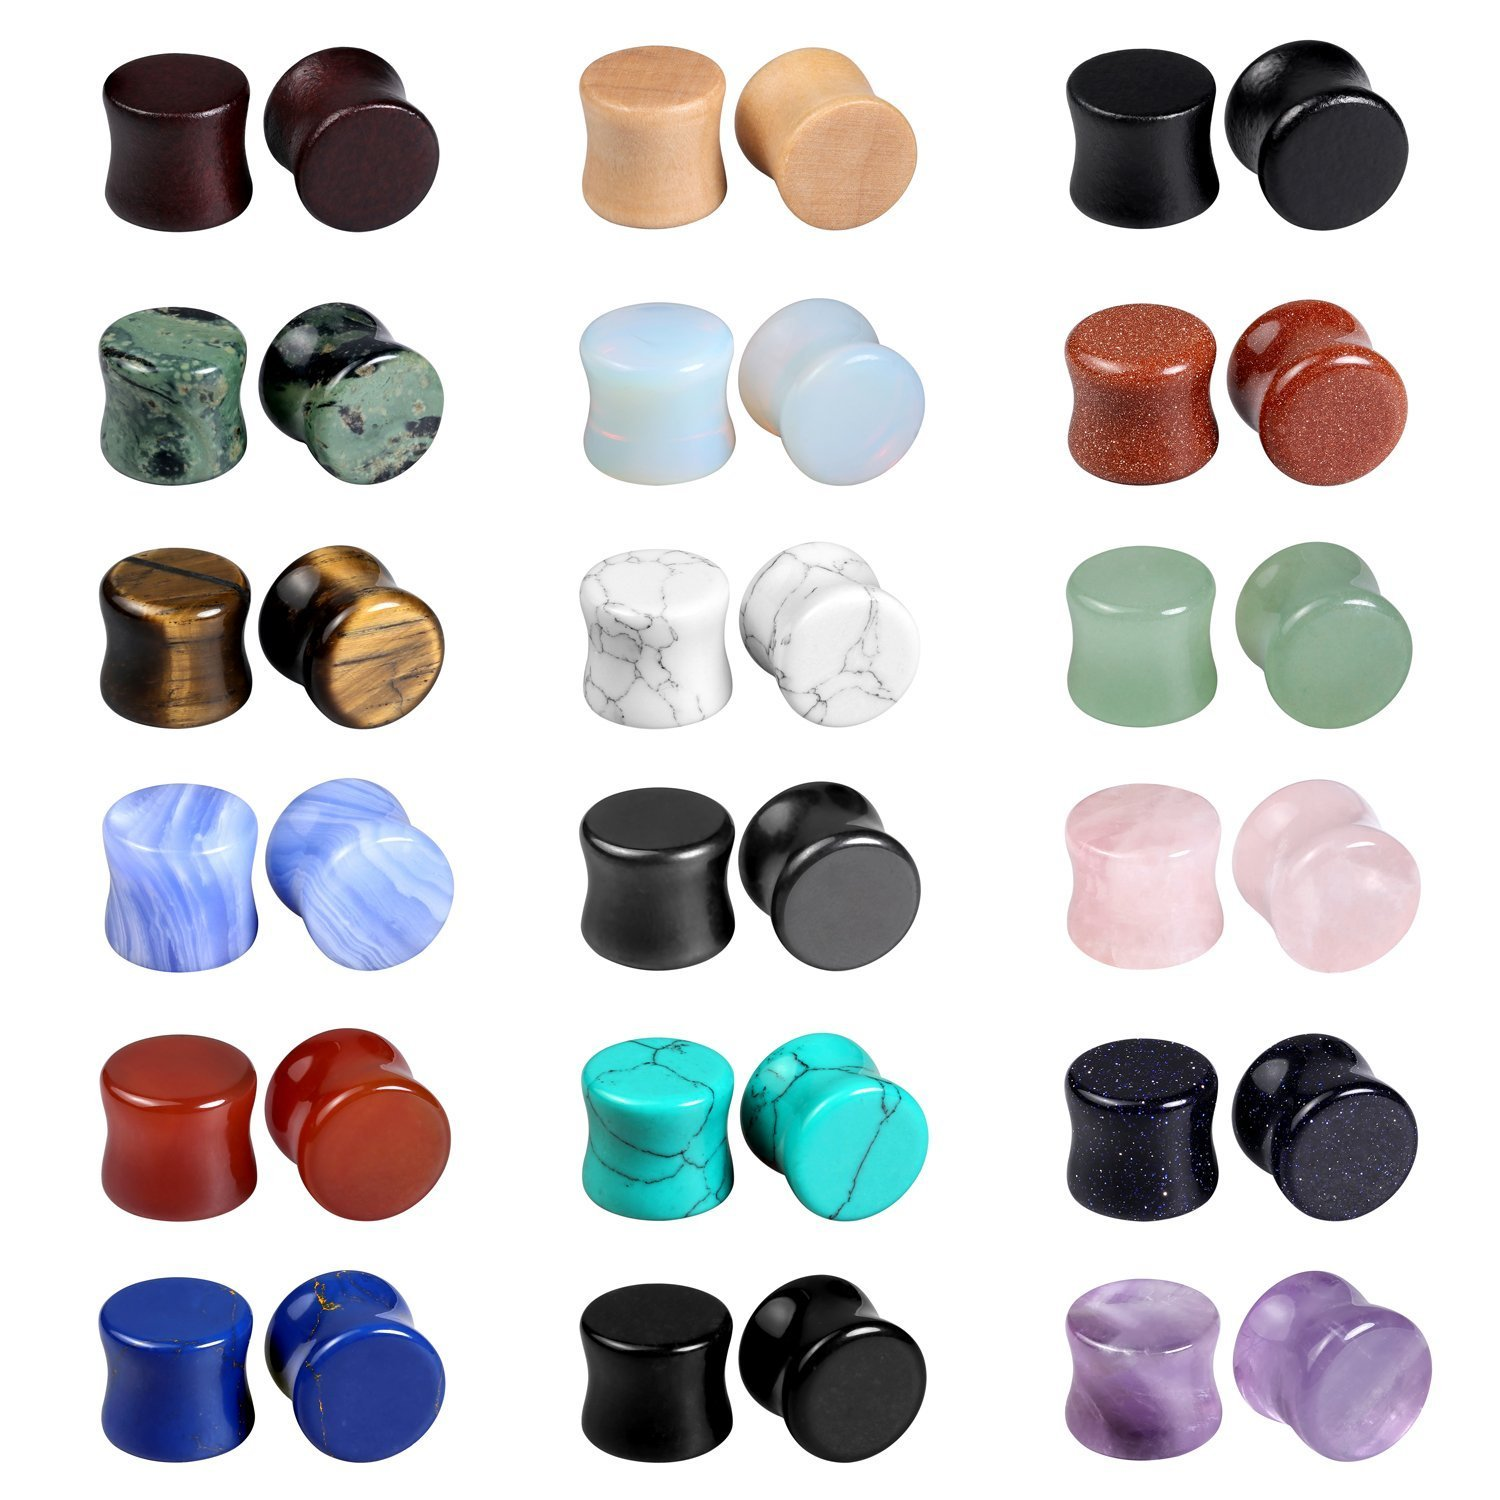 Evevil Wood Mixed Stone Plugs 6/18 Pairs Set Ear Plugs Ear Tunnels Ear Gauges Double Flared Ear Expander Stretcher Set EV18JE080002-6P